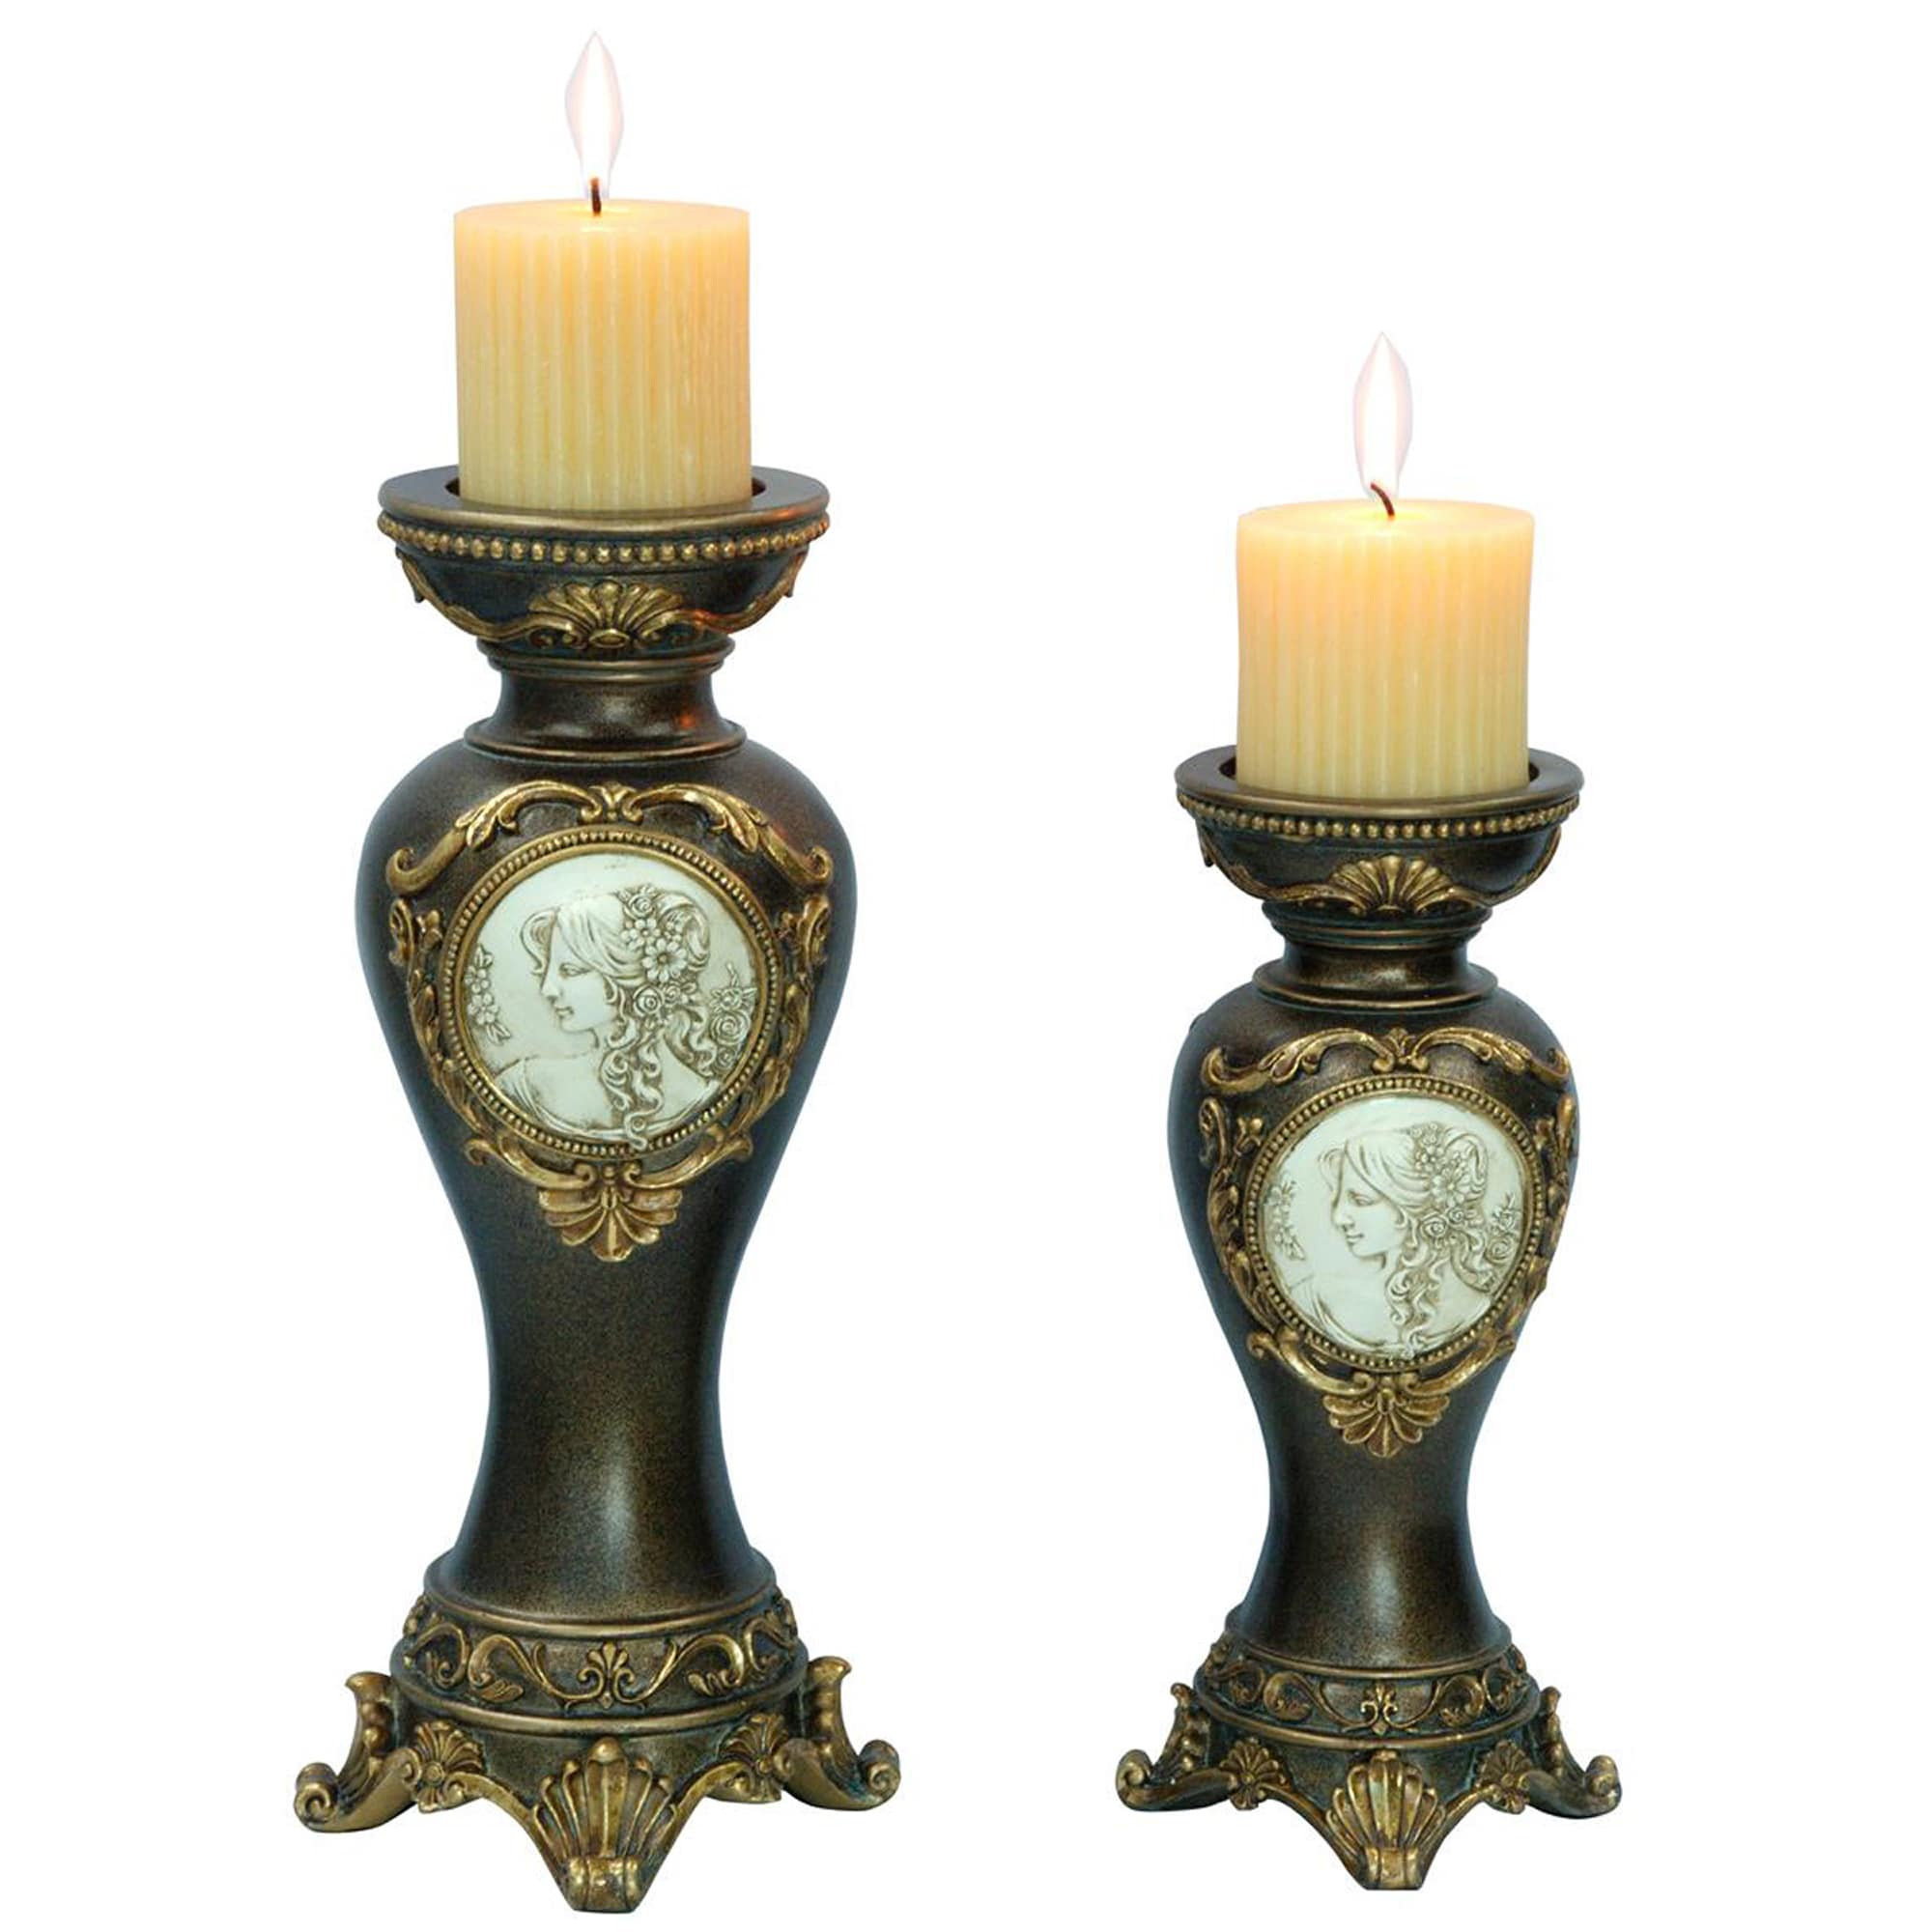 Shop handcrafted bronze decorative candle holders set of 2 free shipping today overstock com 8385197